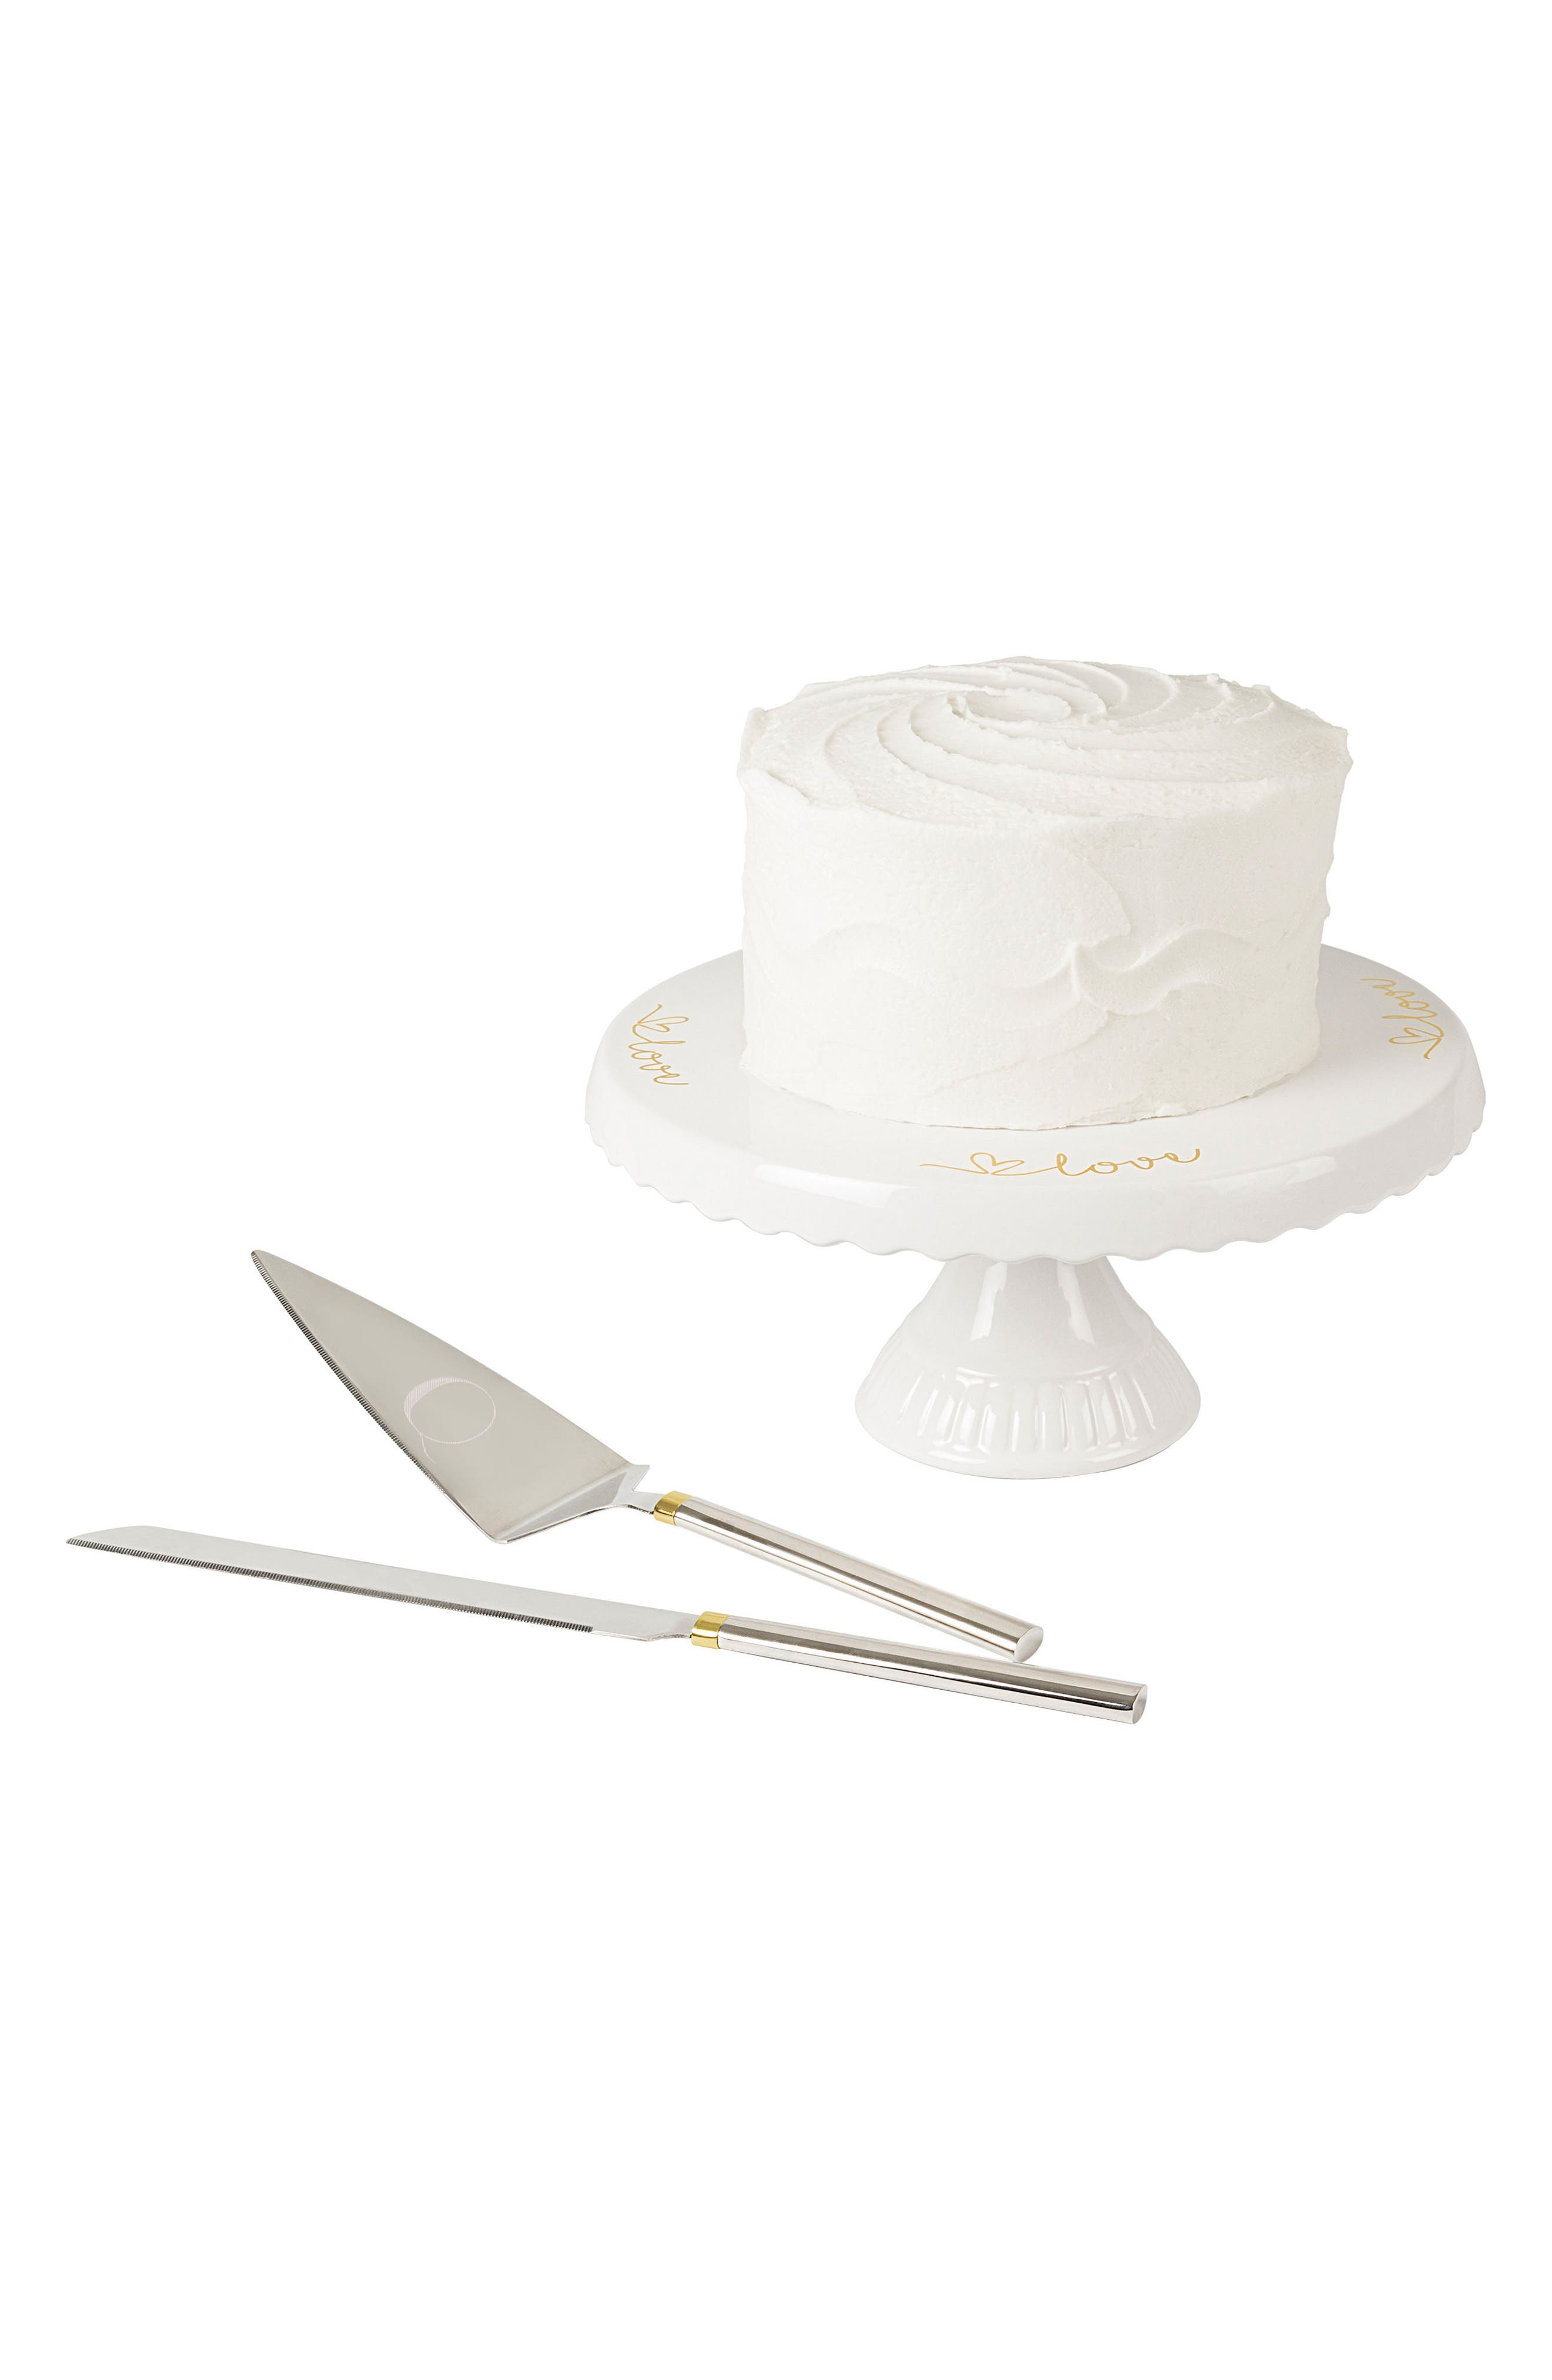 Love Monogram Cake Stand & Server Set,                             Main thumbnail 18, color,